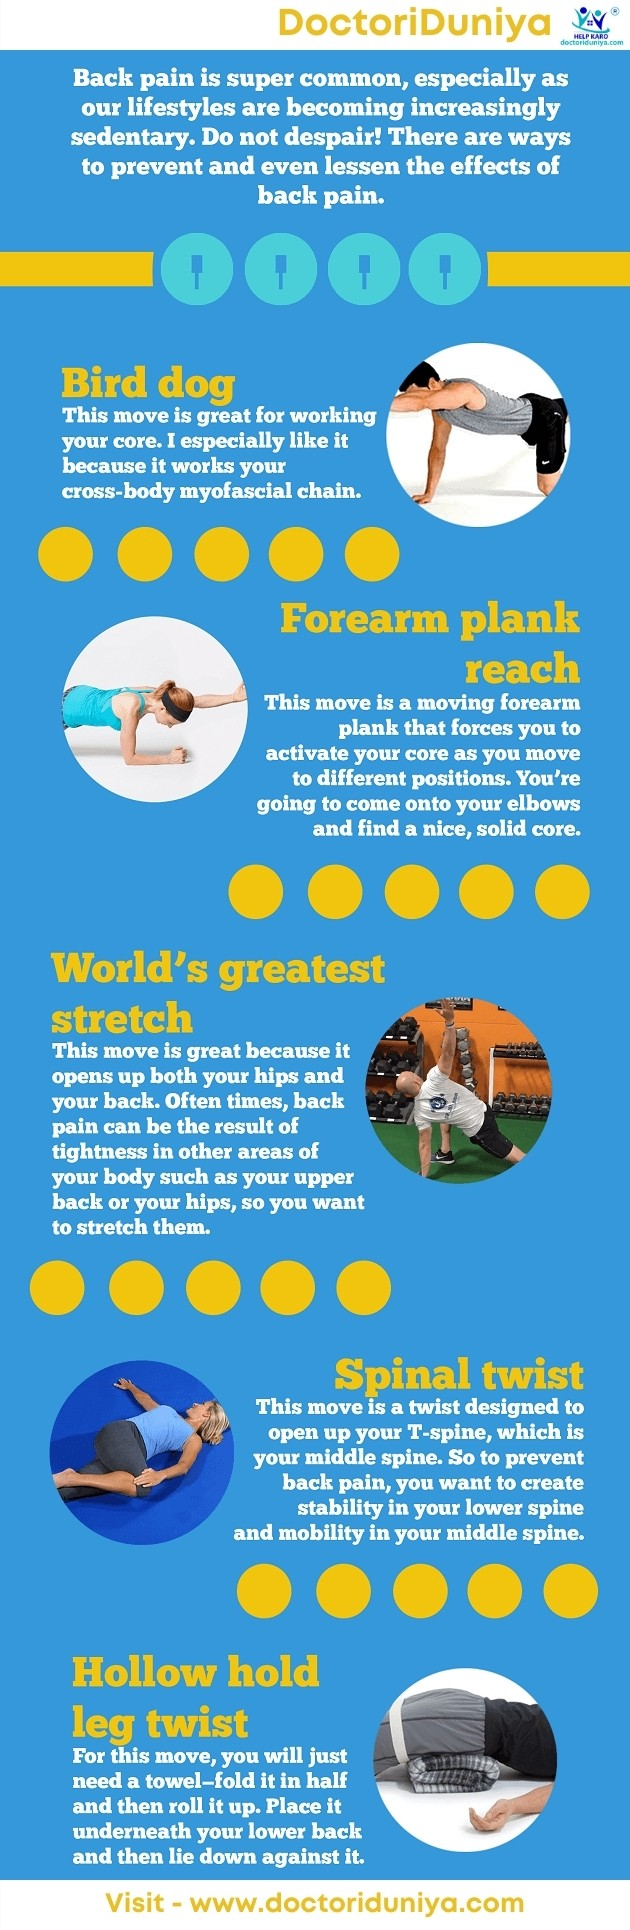 Exercises for back apin